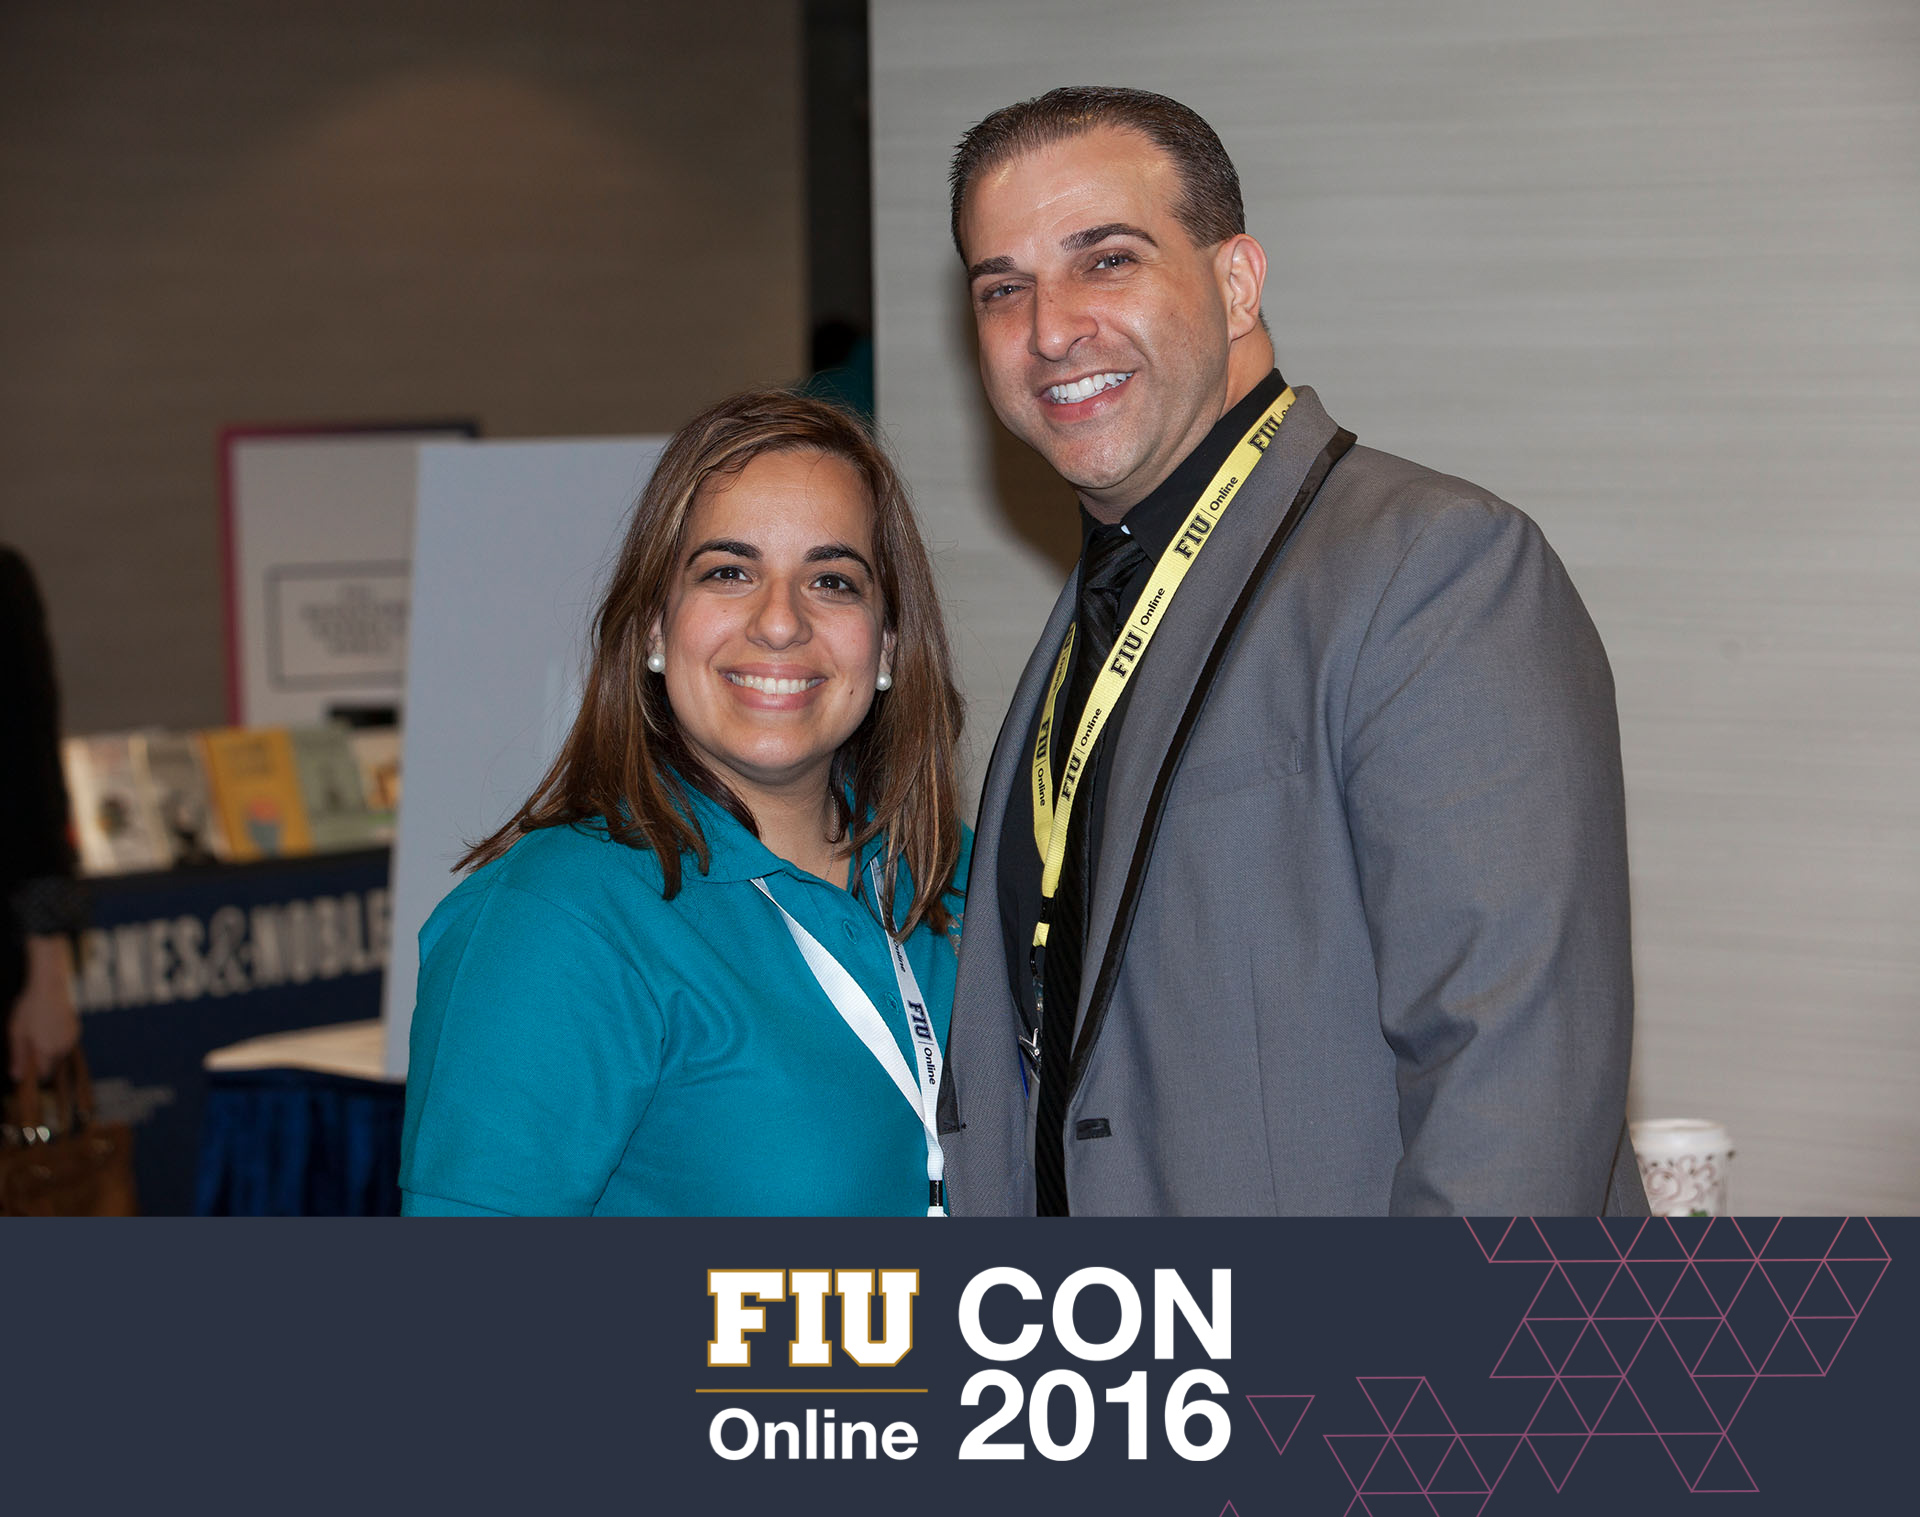 205.jpg FIU Online conference photos